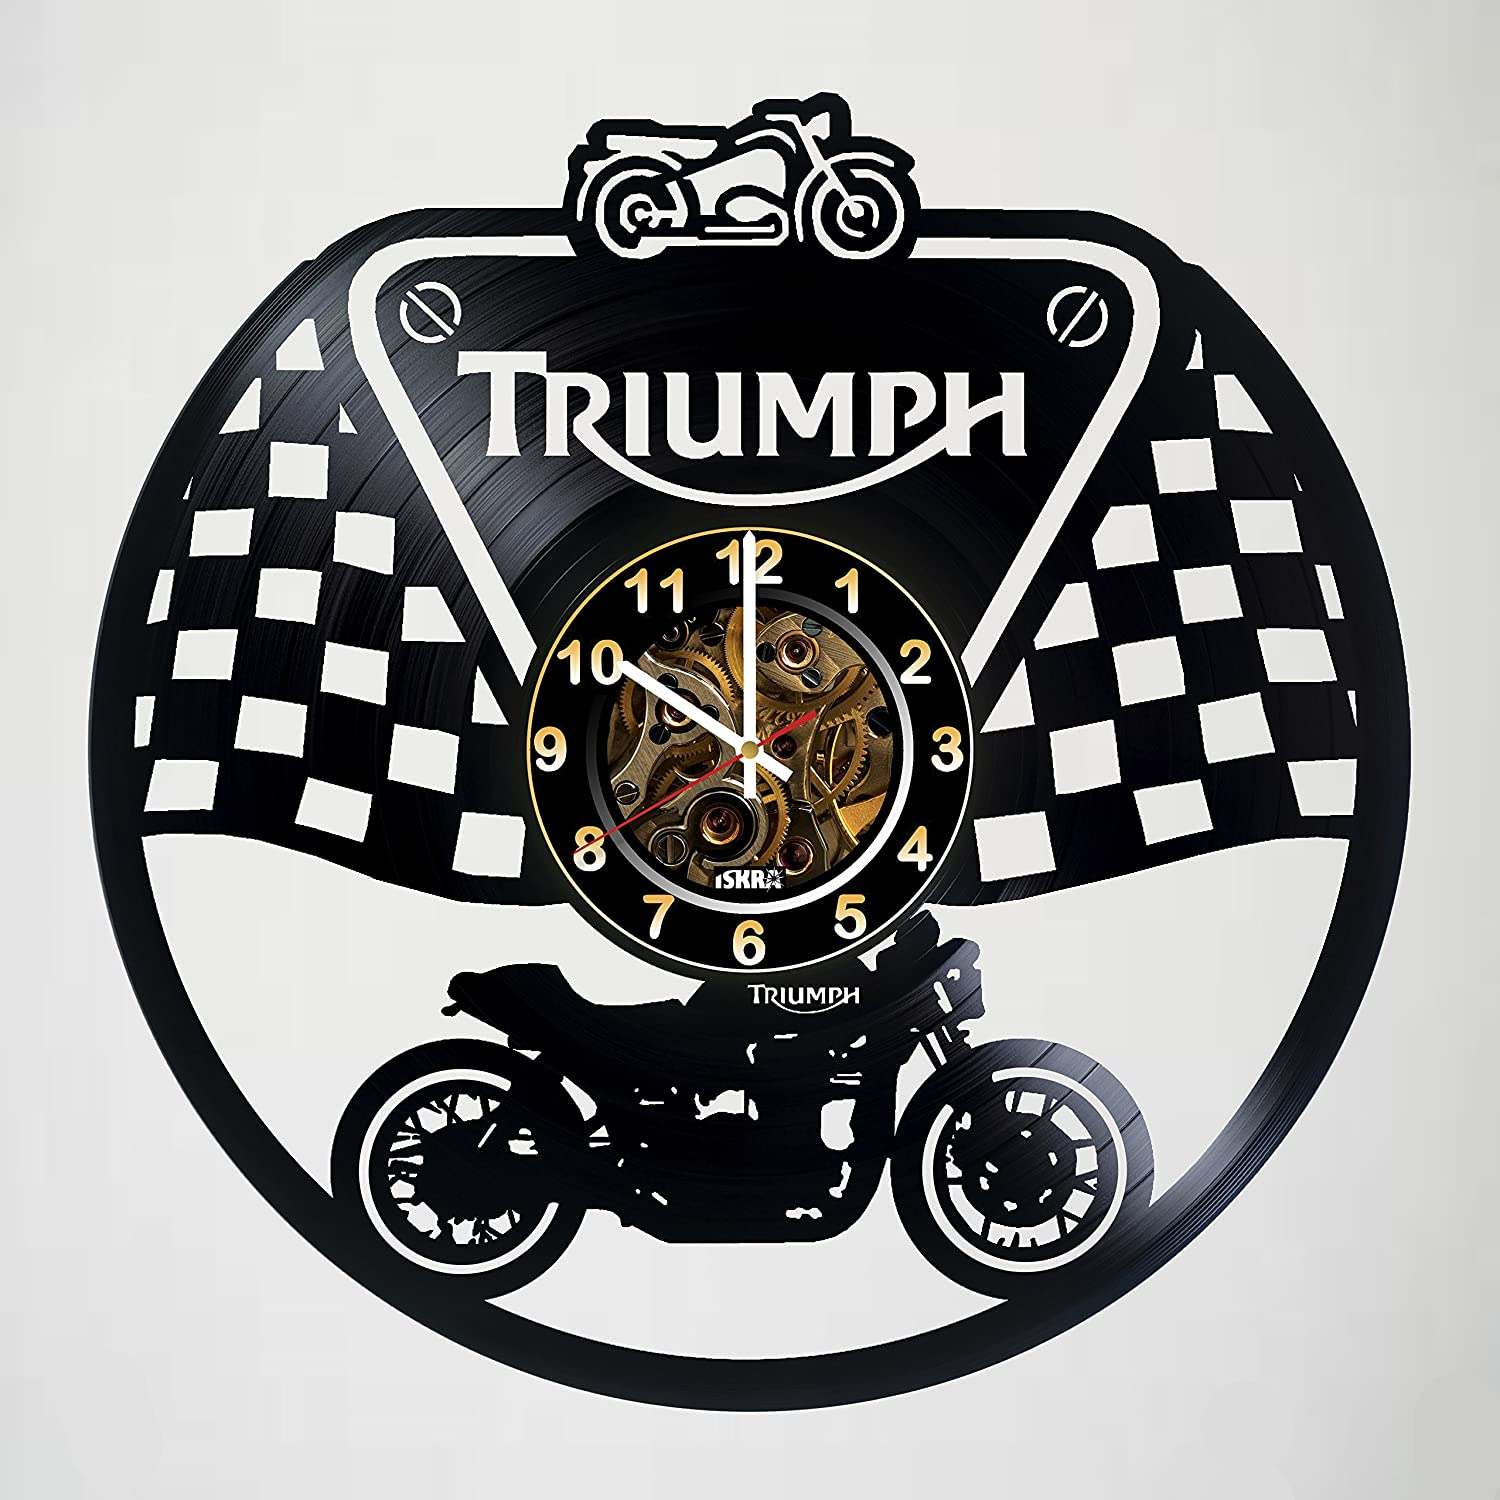 anniversary customize your clock Triumph wedding Motorcycle handmade artwork unique home bedroom living kids room nursery wall decor great gifts idea for birthday Vinyl Record Wall Clock